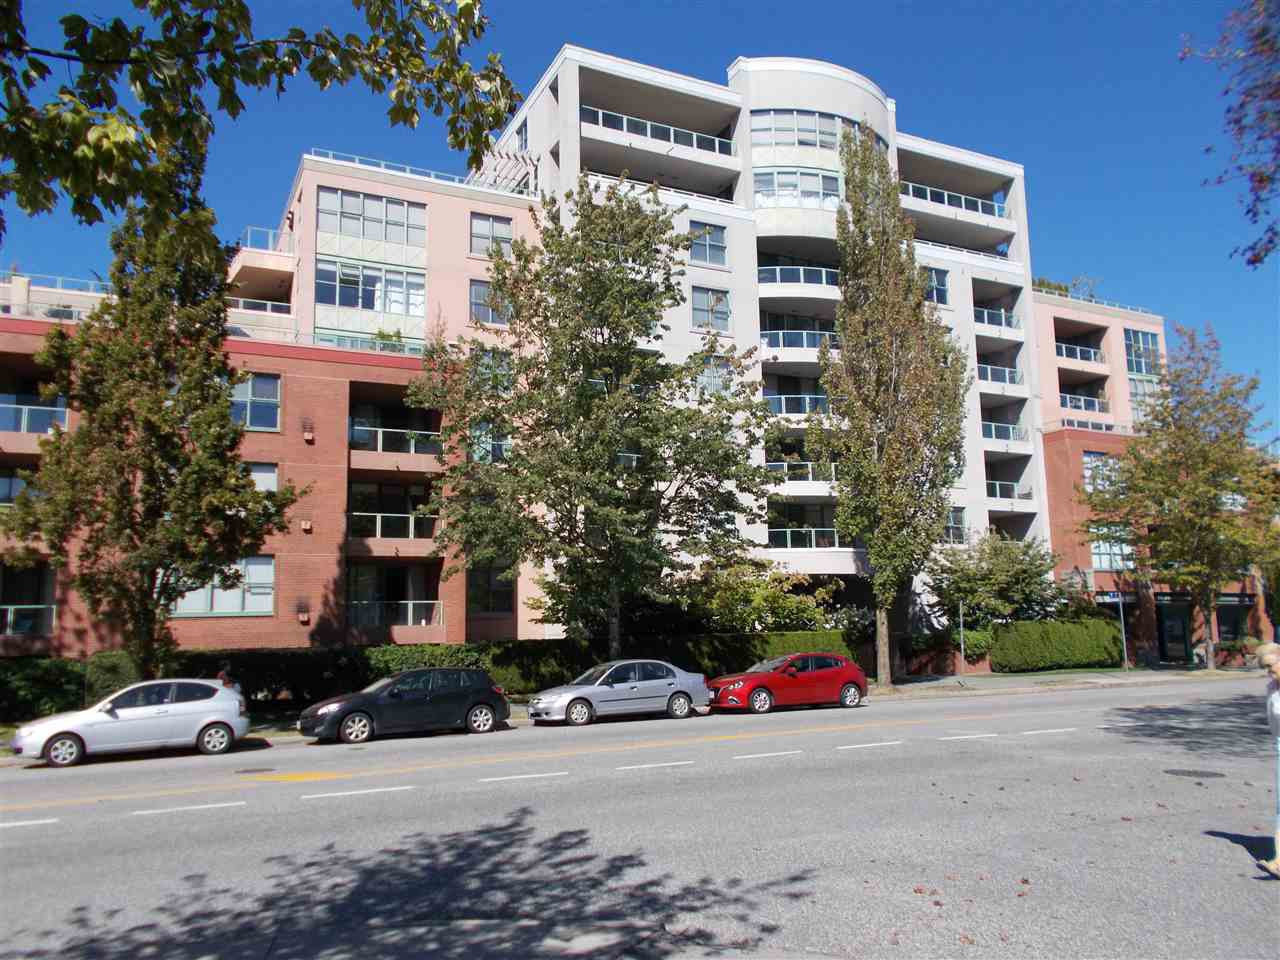 """Main Photo: 106 503 W 16TH Avenue in Vancouver: Fairview VW Condo for sale in """"Pacifica/Fairview VW"""" (Vancouver West)  : MLS®# R2400371"""